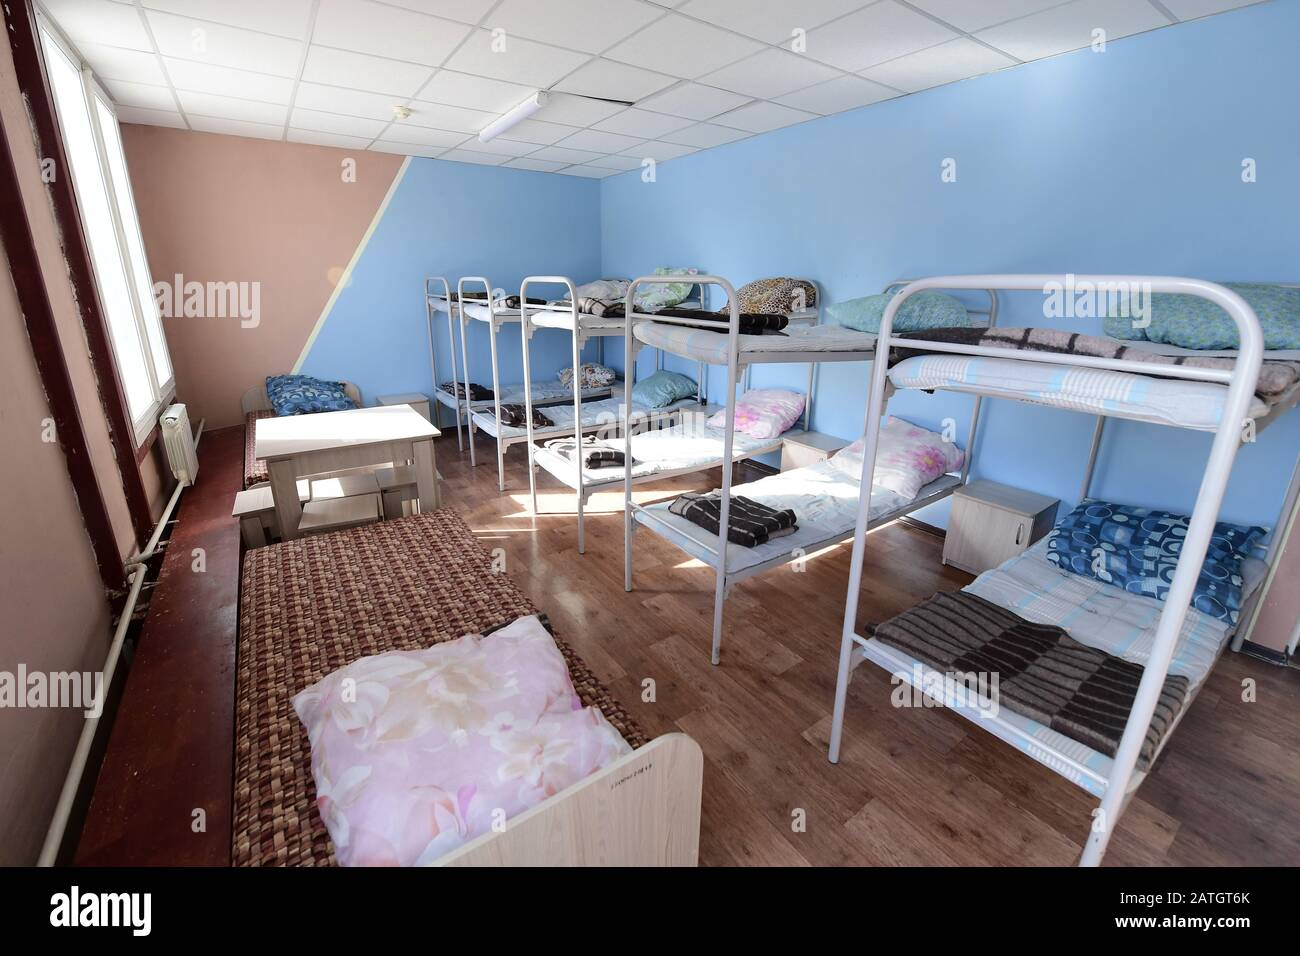 Picture of: Primorye Territory Russia February 3 2020 Bunk Beds In A Bedroom In A Quarantine Facility For